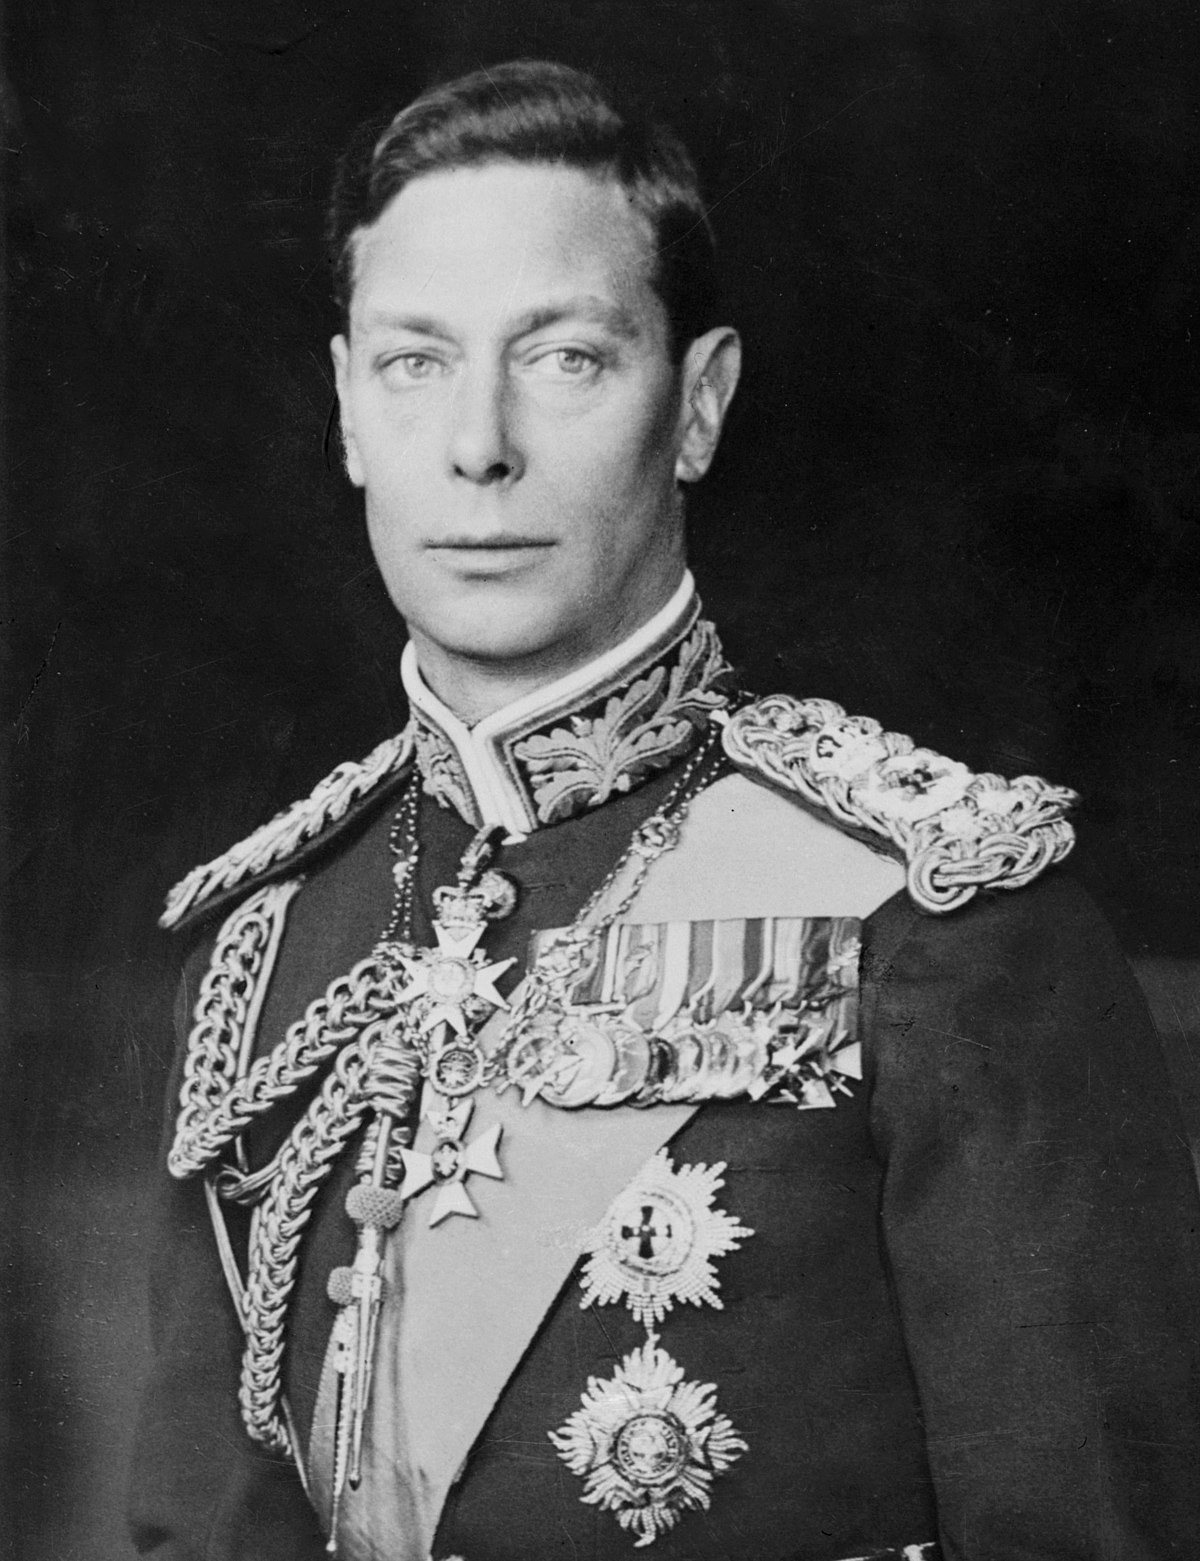 King George Day